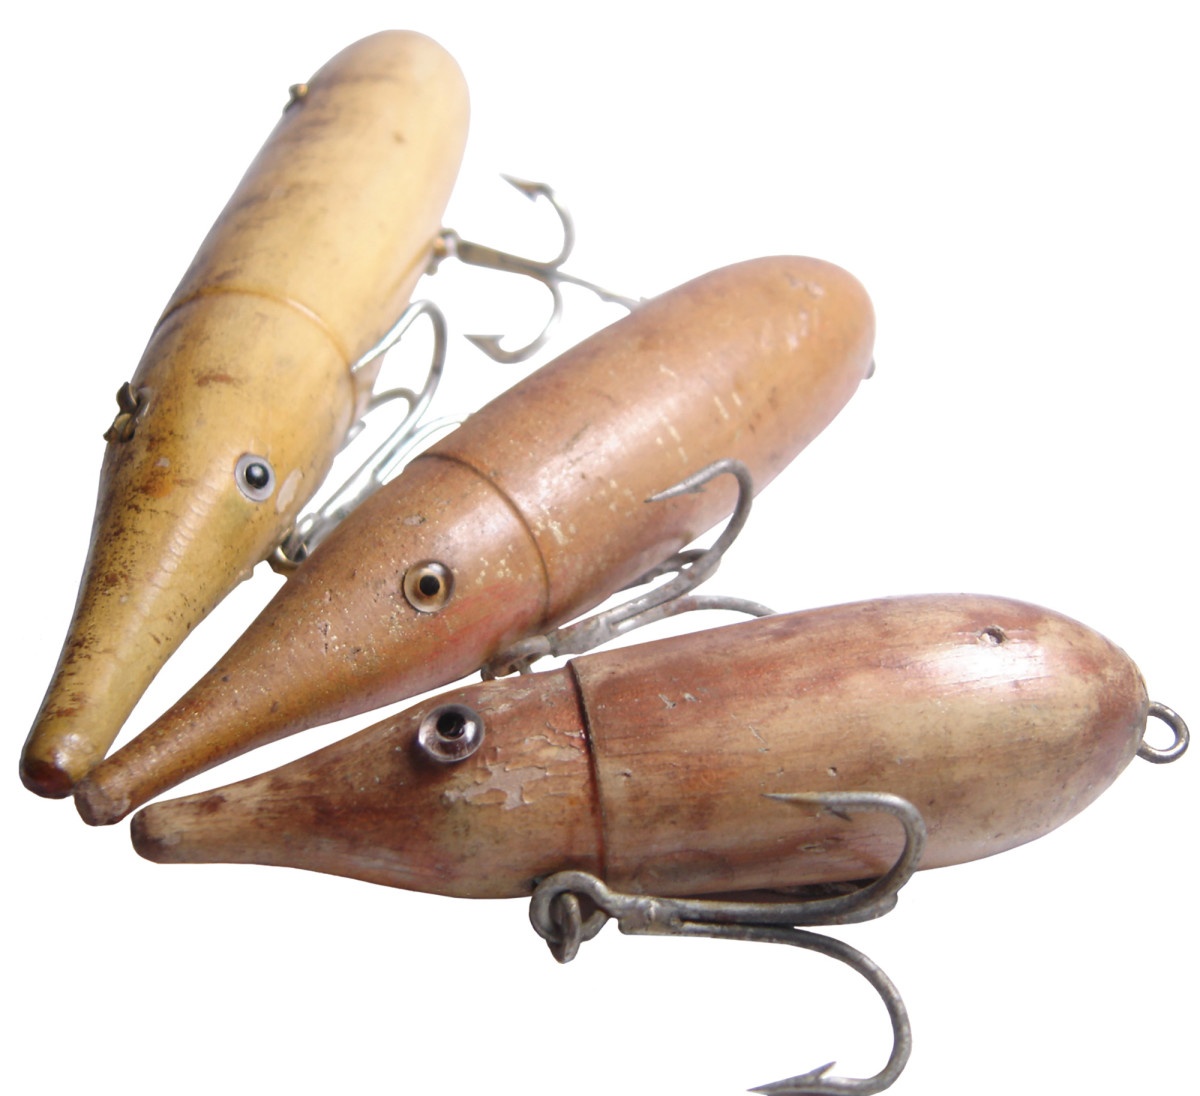 Three sizes of the Norris Jet Squid from the collection of  Dr. Frank Richardson.